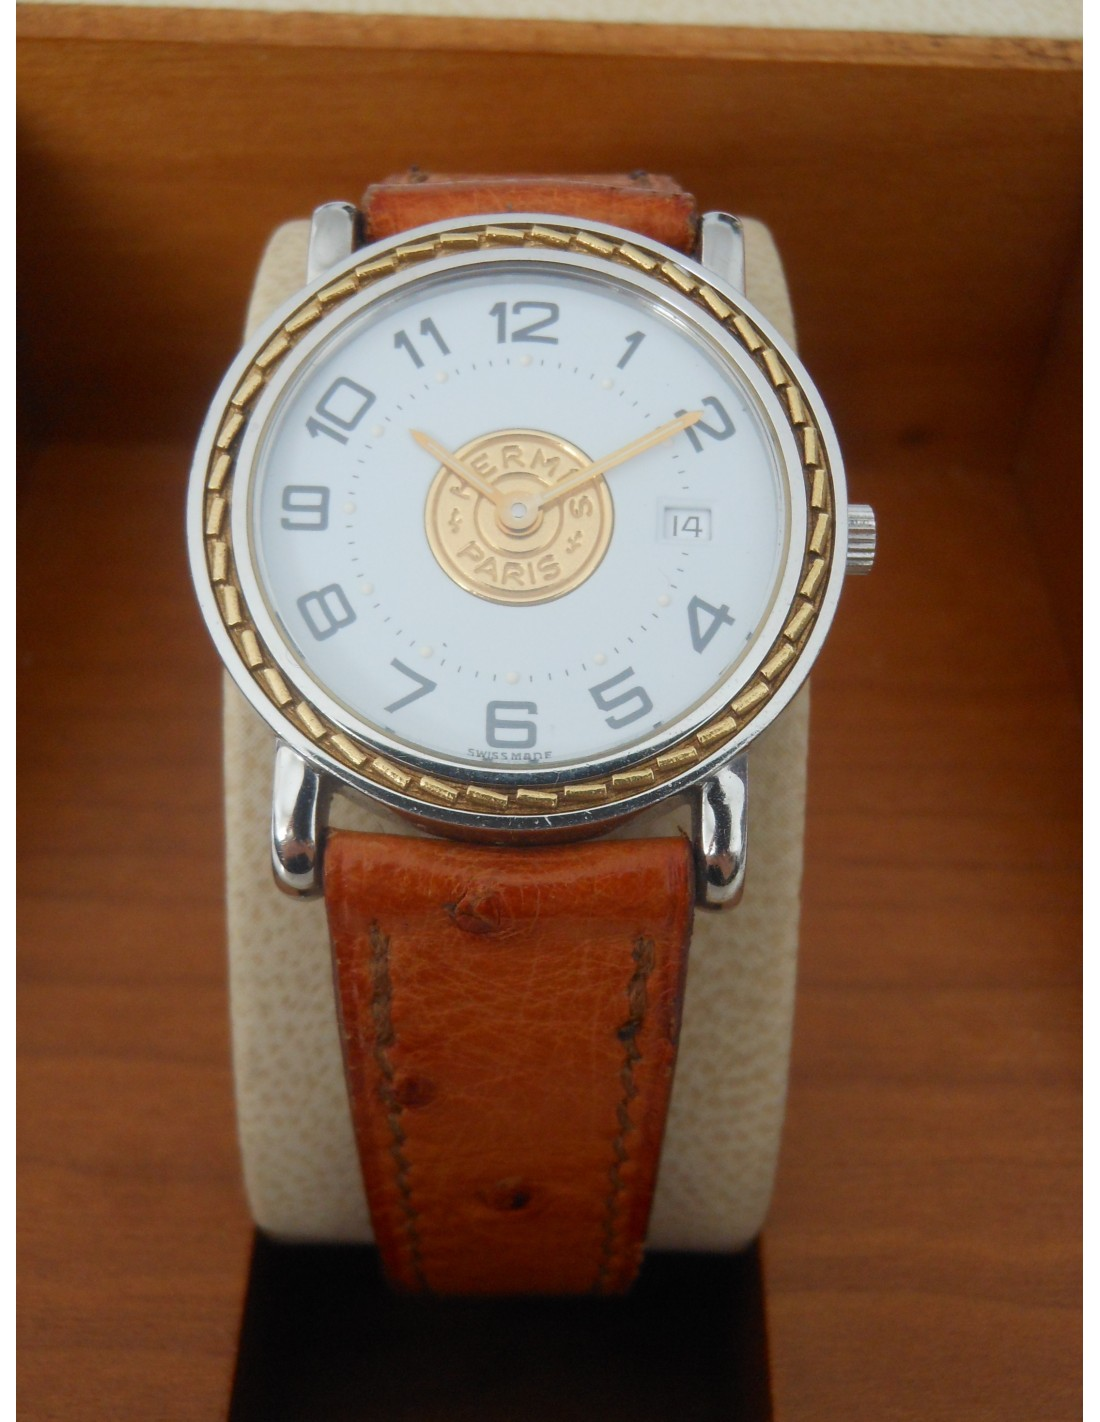 7f459f01f0 montre hermes sellier pm pour dame